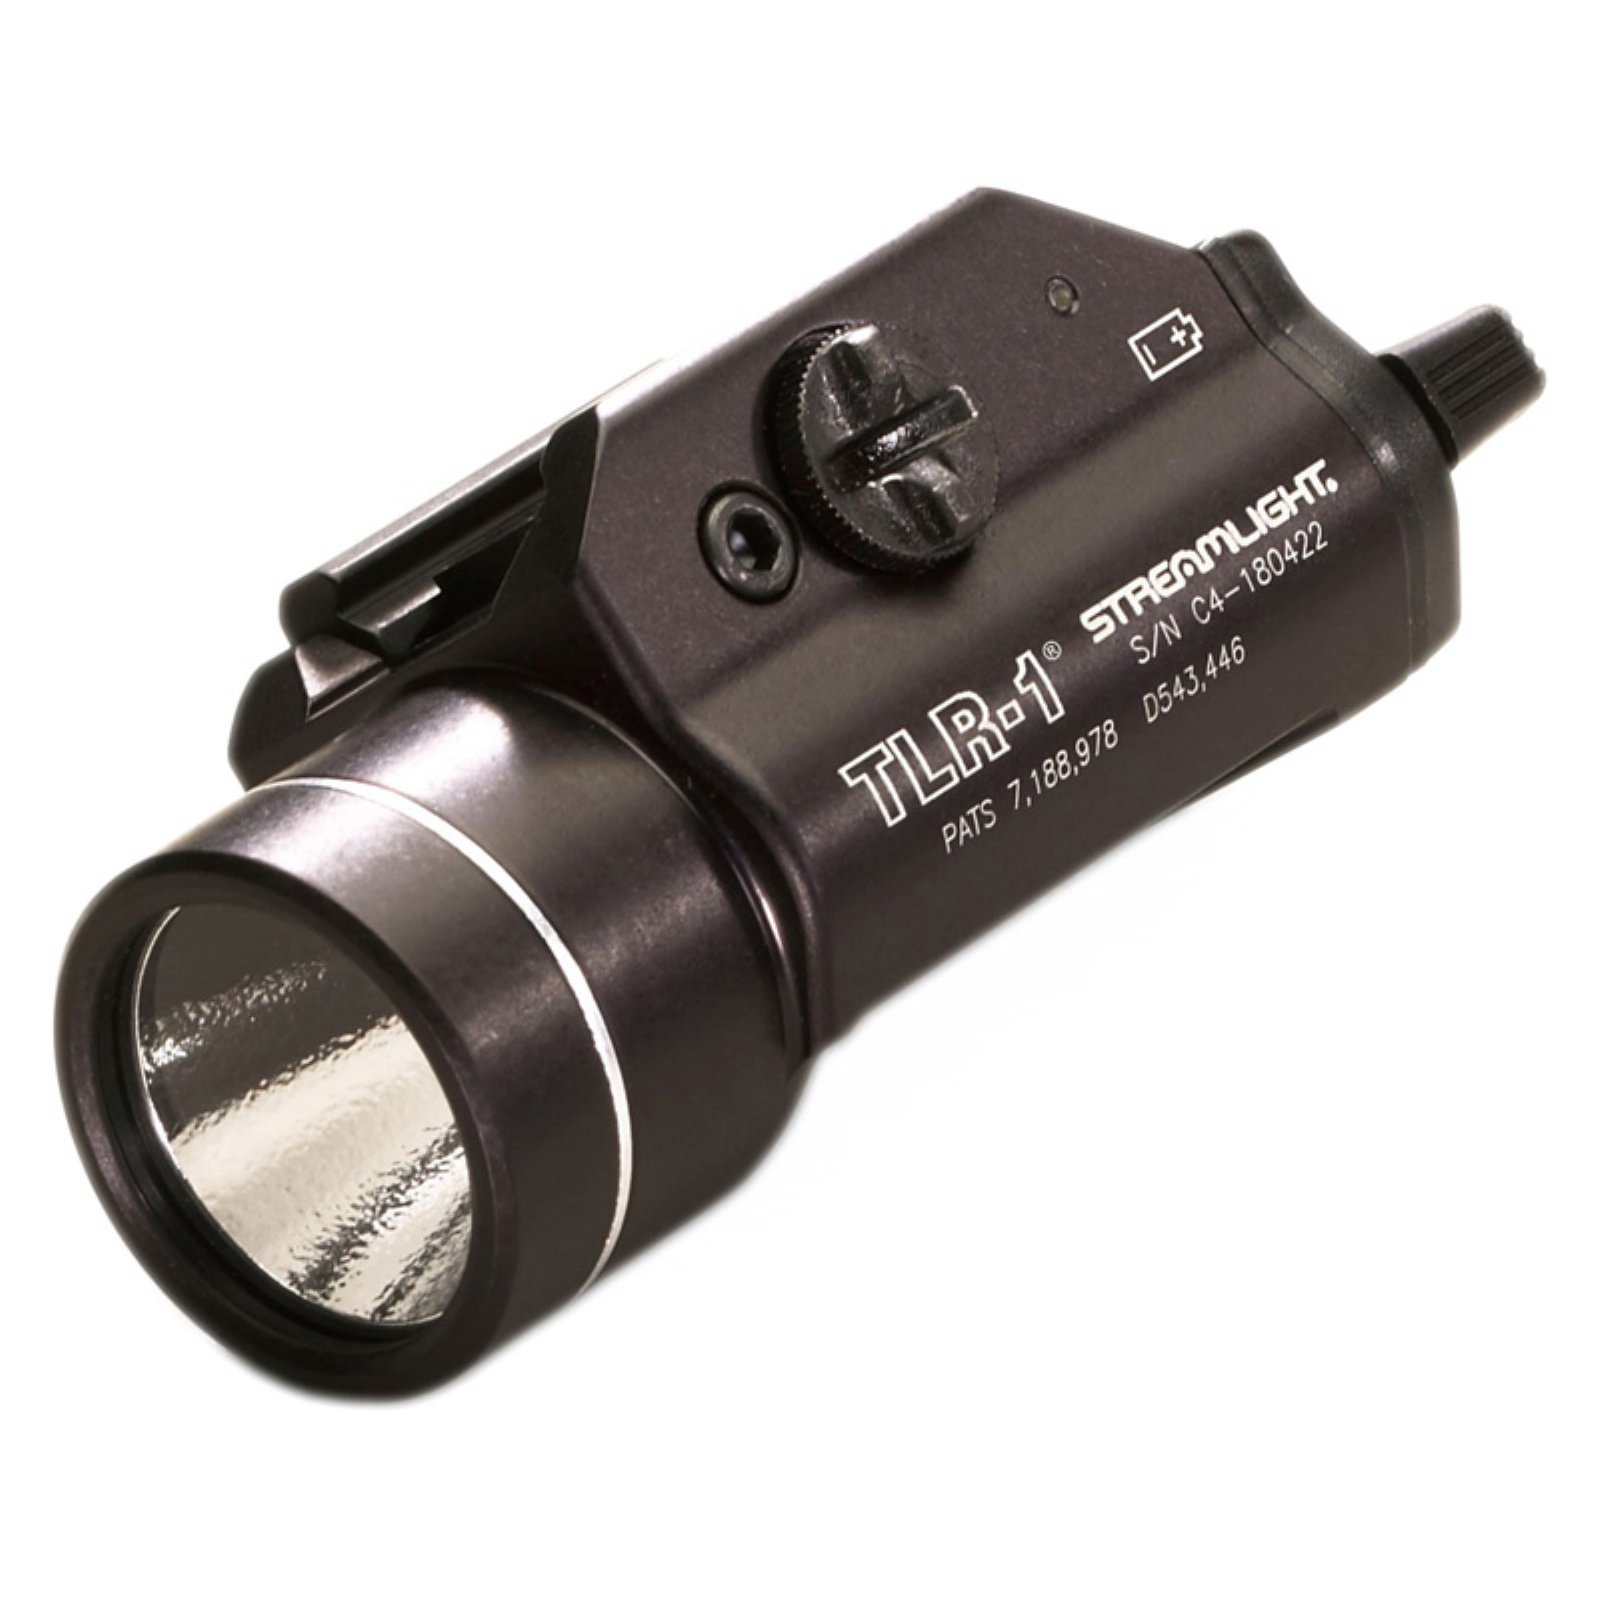 Streamlight TLR-1 69110 Tactical Weapon Mount Flashlight C4 LED by Streamlight